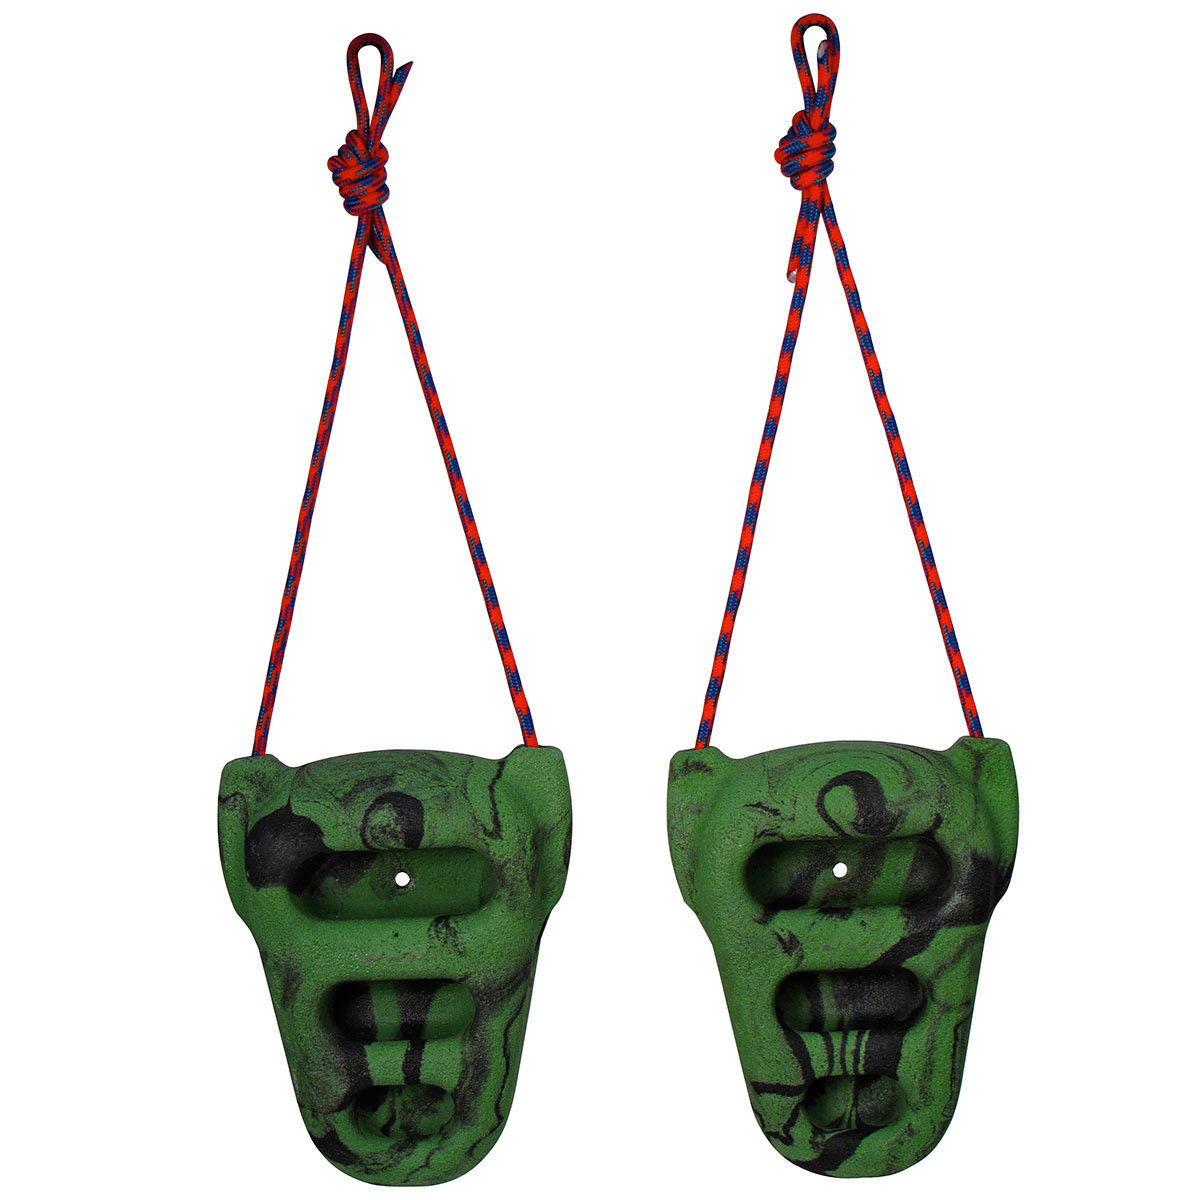 Metolius Rock Rings